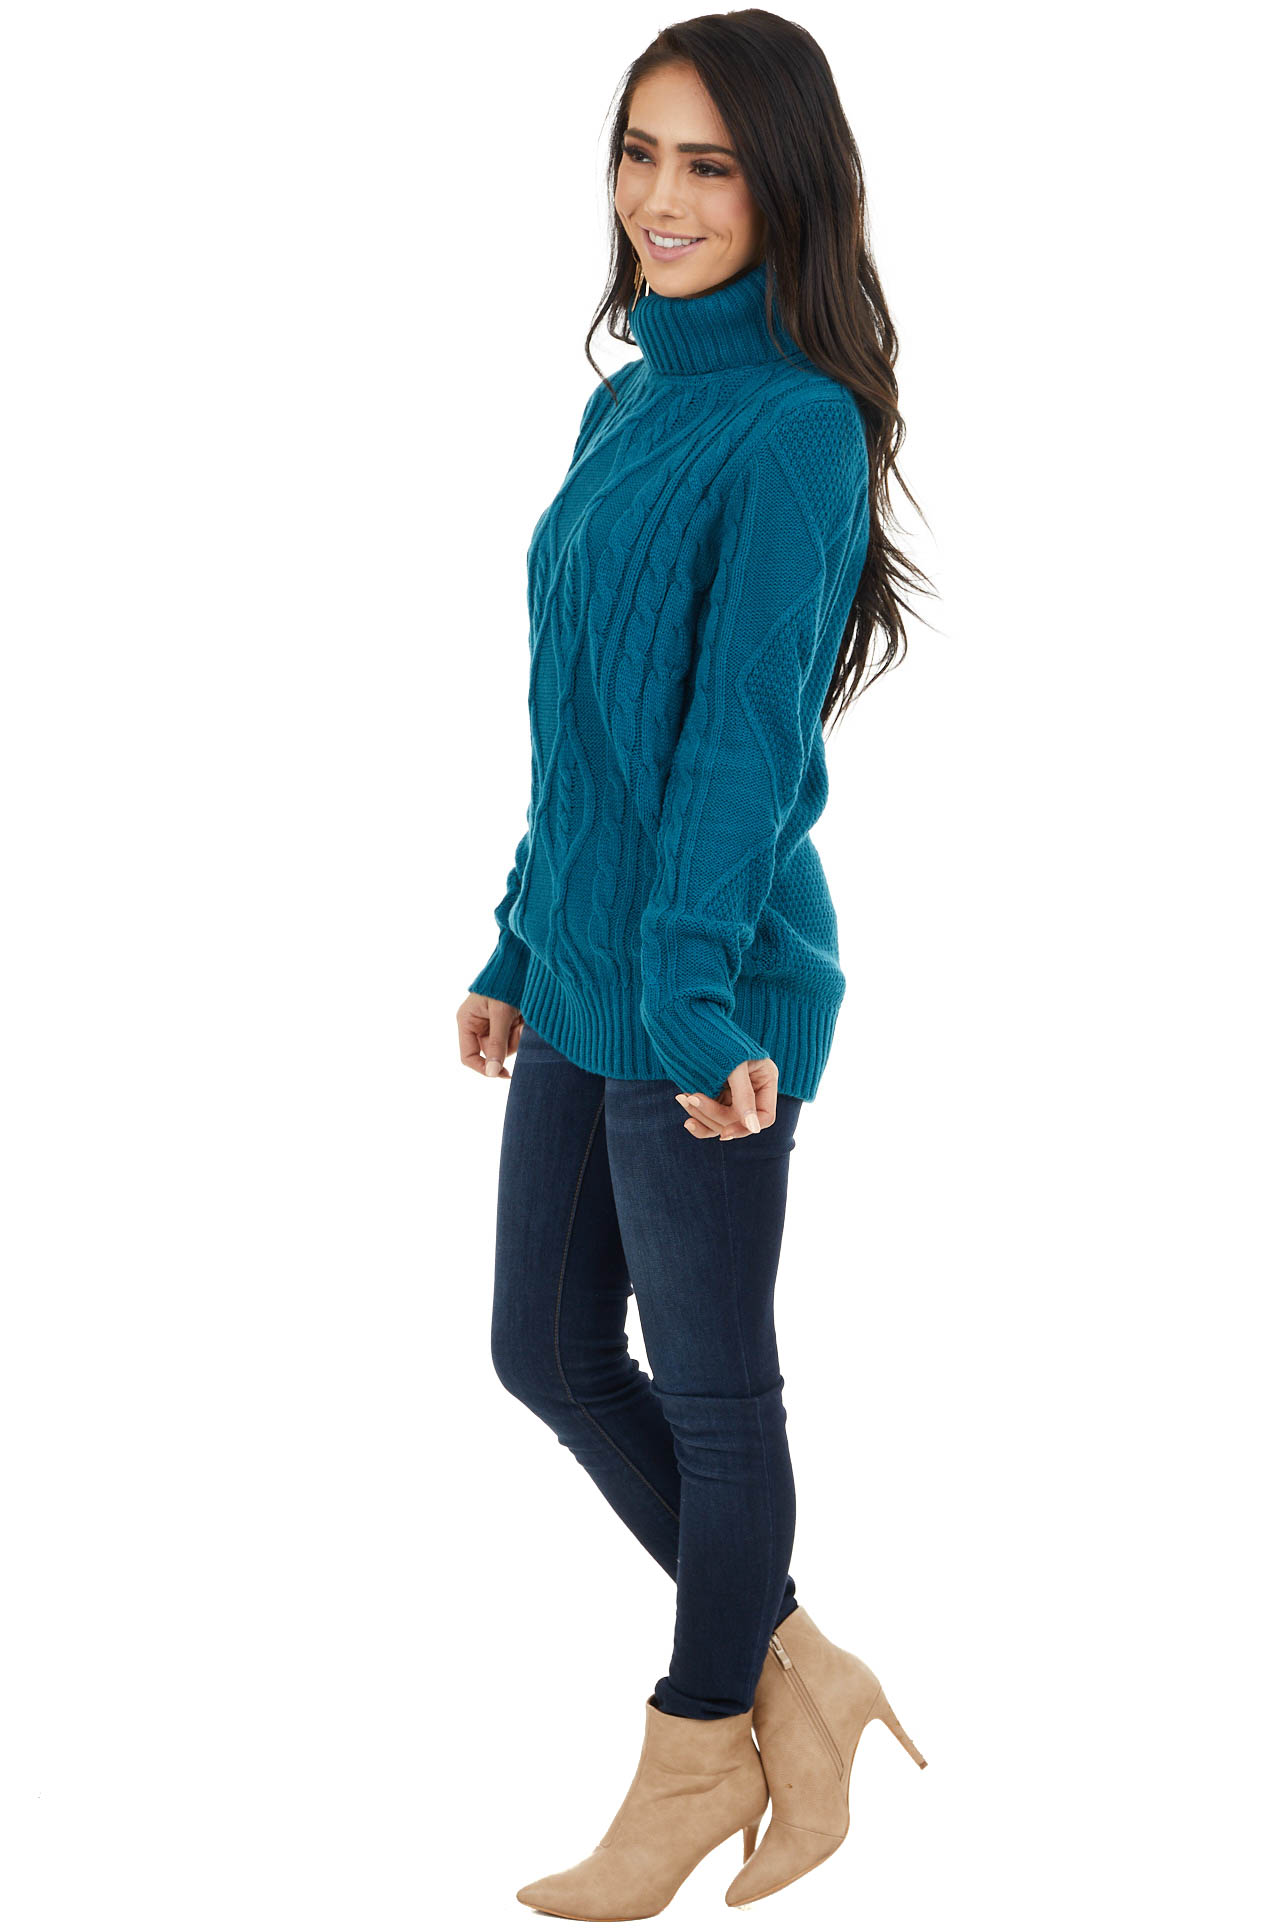 Dark Teal Cable Knit Lightweight Sweater with Turtleneck